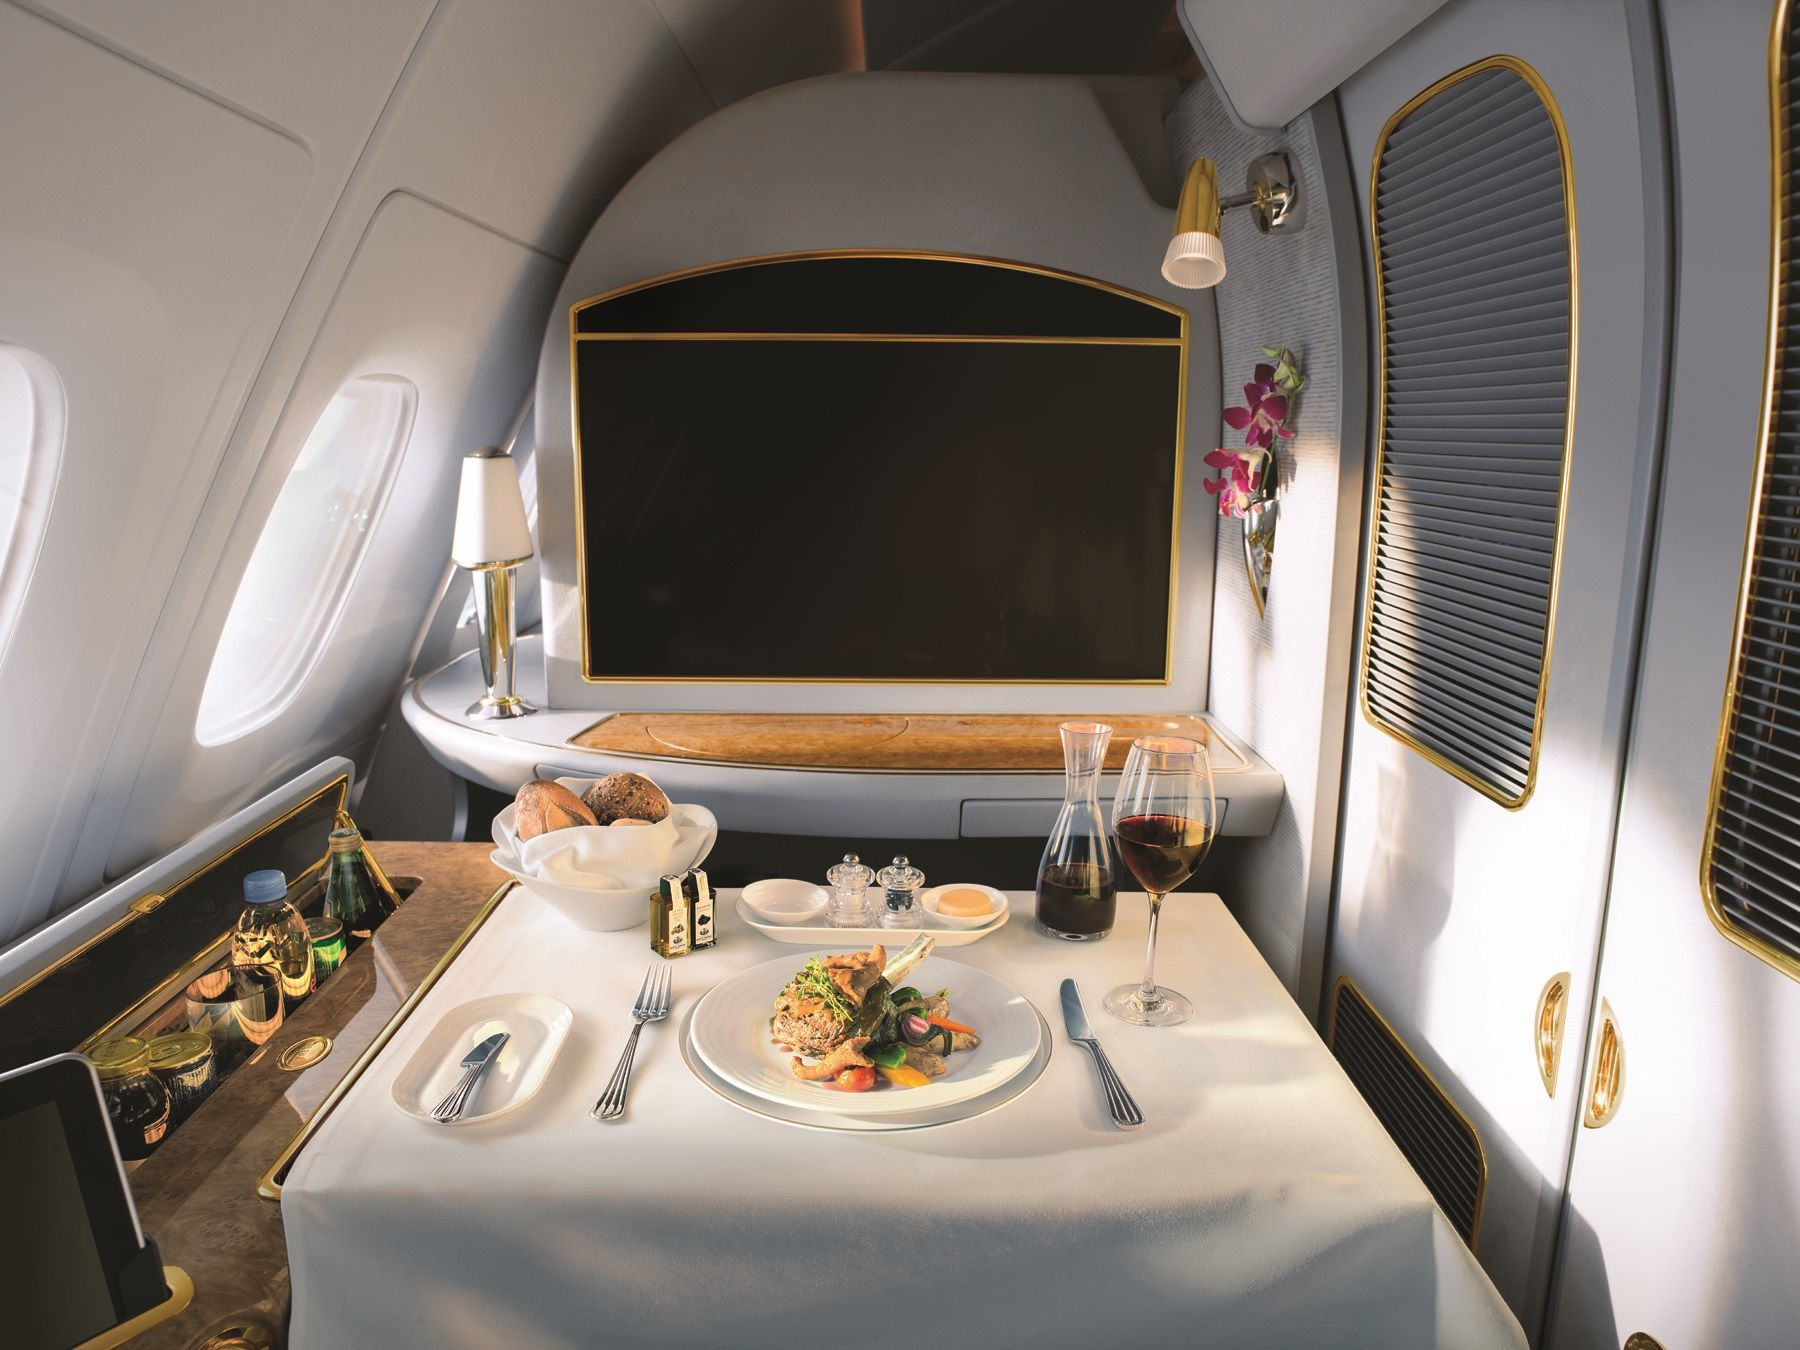 Emirates Expands On Inflight Entertainment, Launches Food And Wine Channel photo